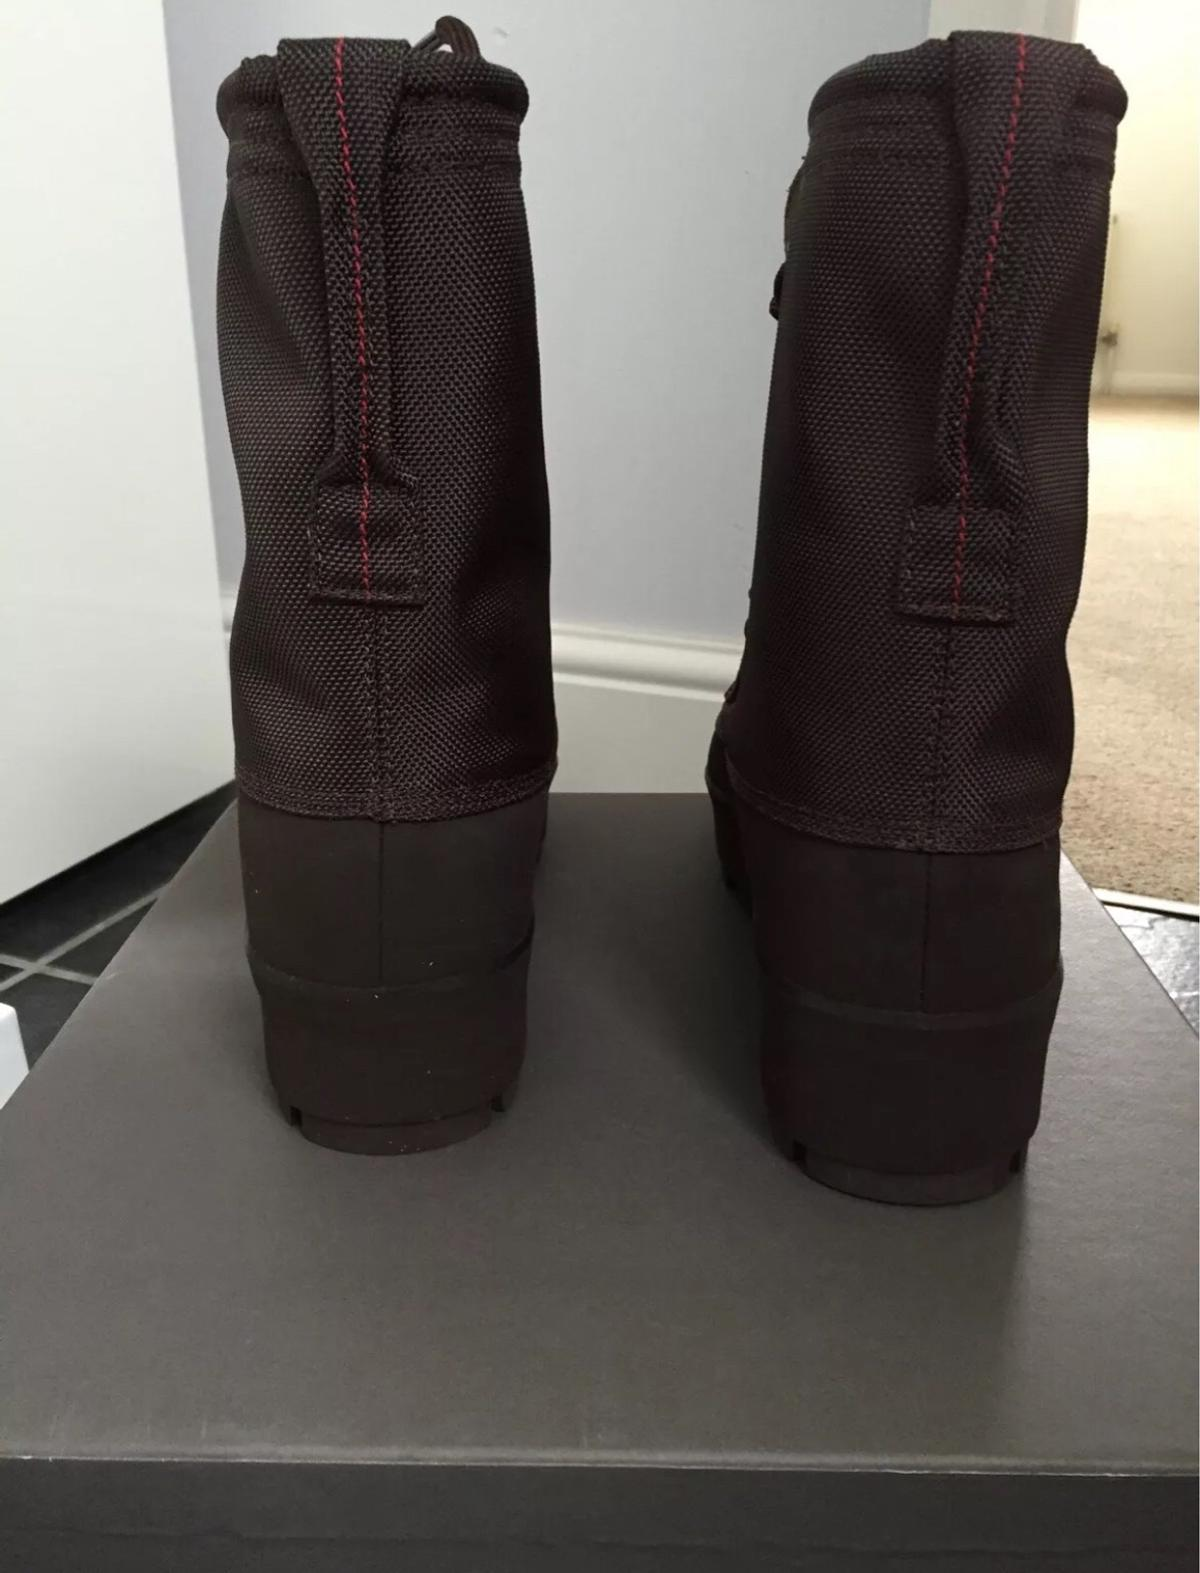 e297a80746a ADIDAS YEEZY 950 M BOOTS BROWN KANYE TRAINERS in KT2 London for ...